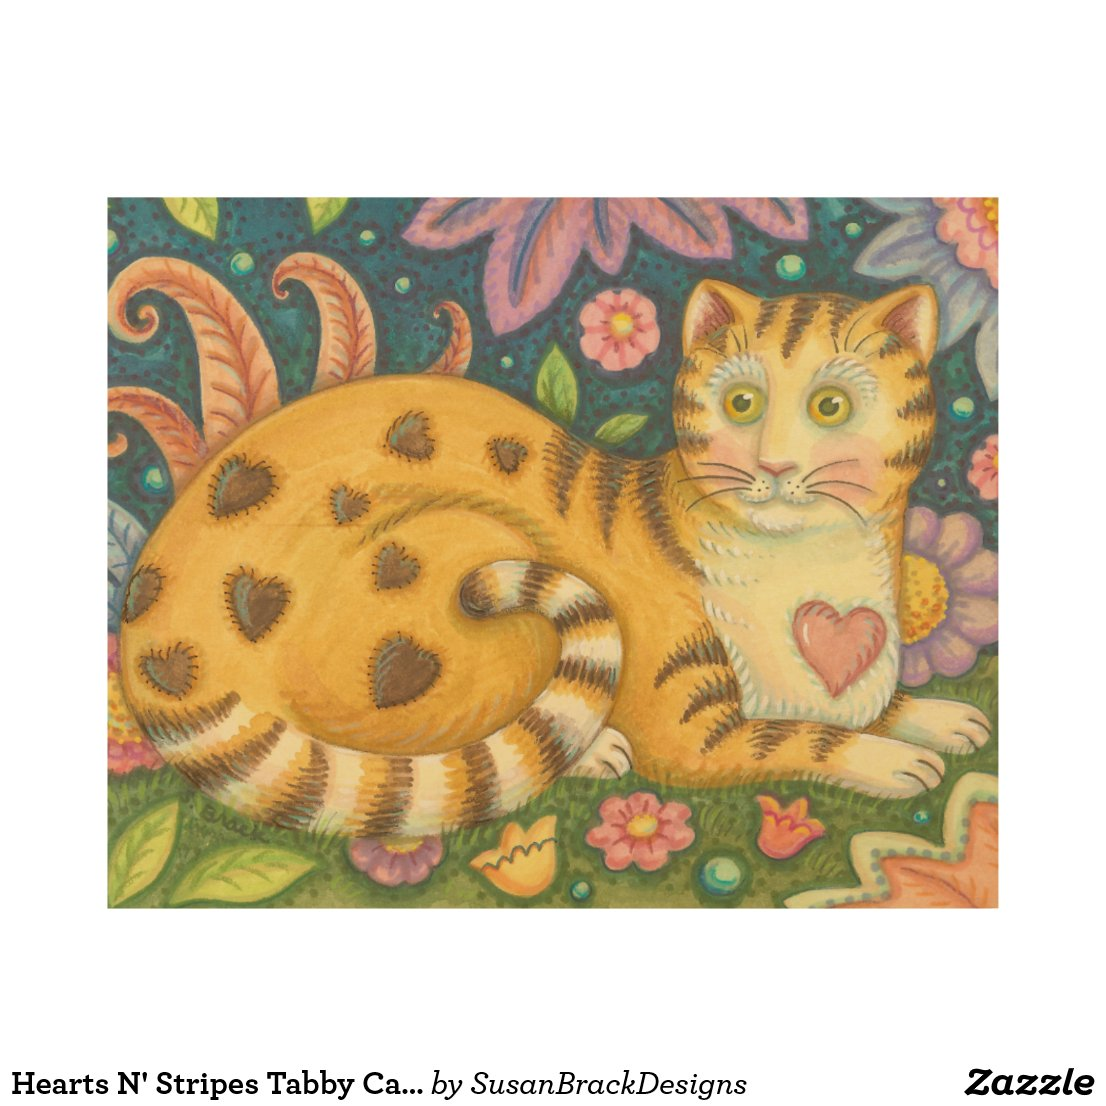 Hearts N' Stripes Tabby Cat Folk Art Wood Print